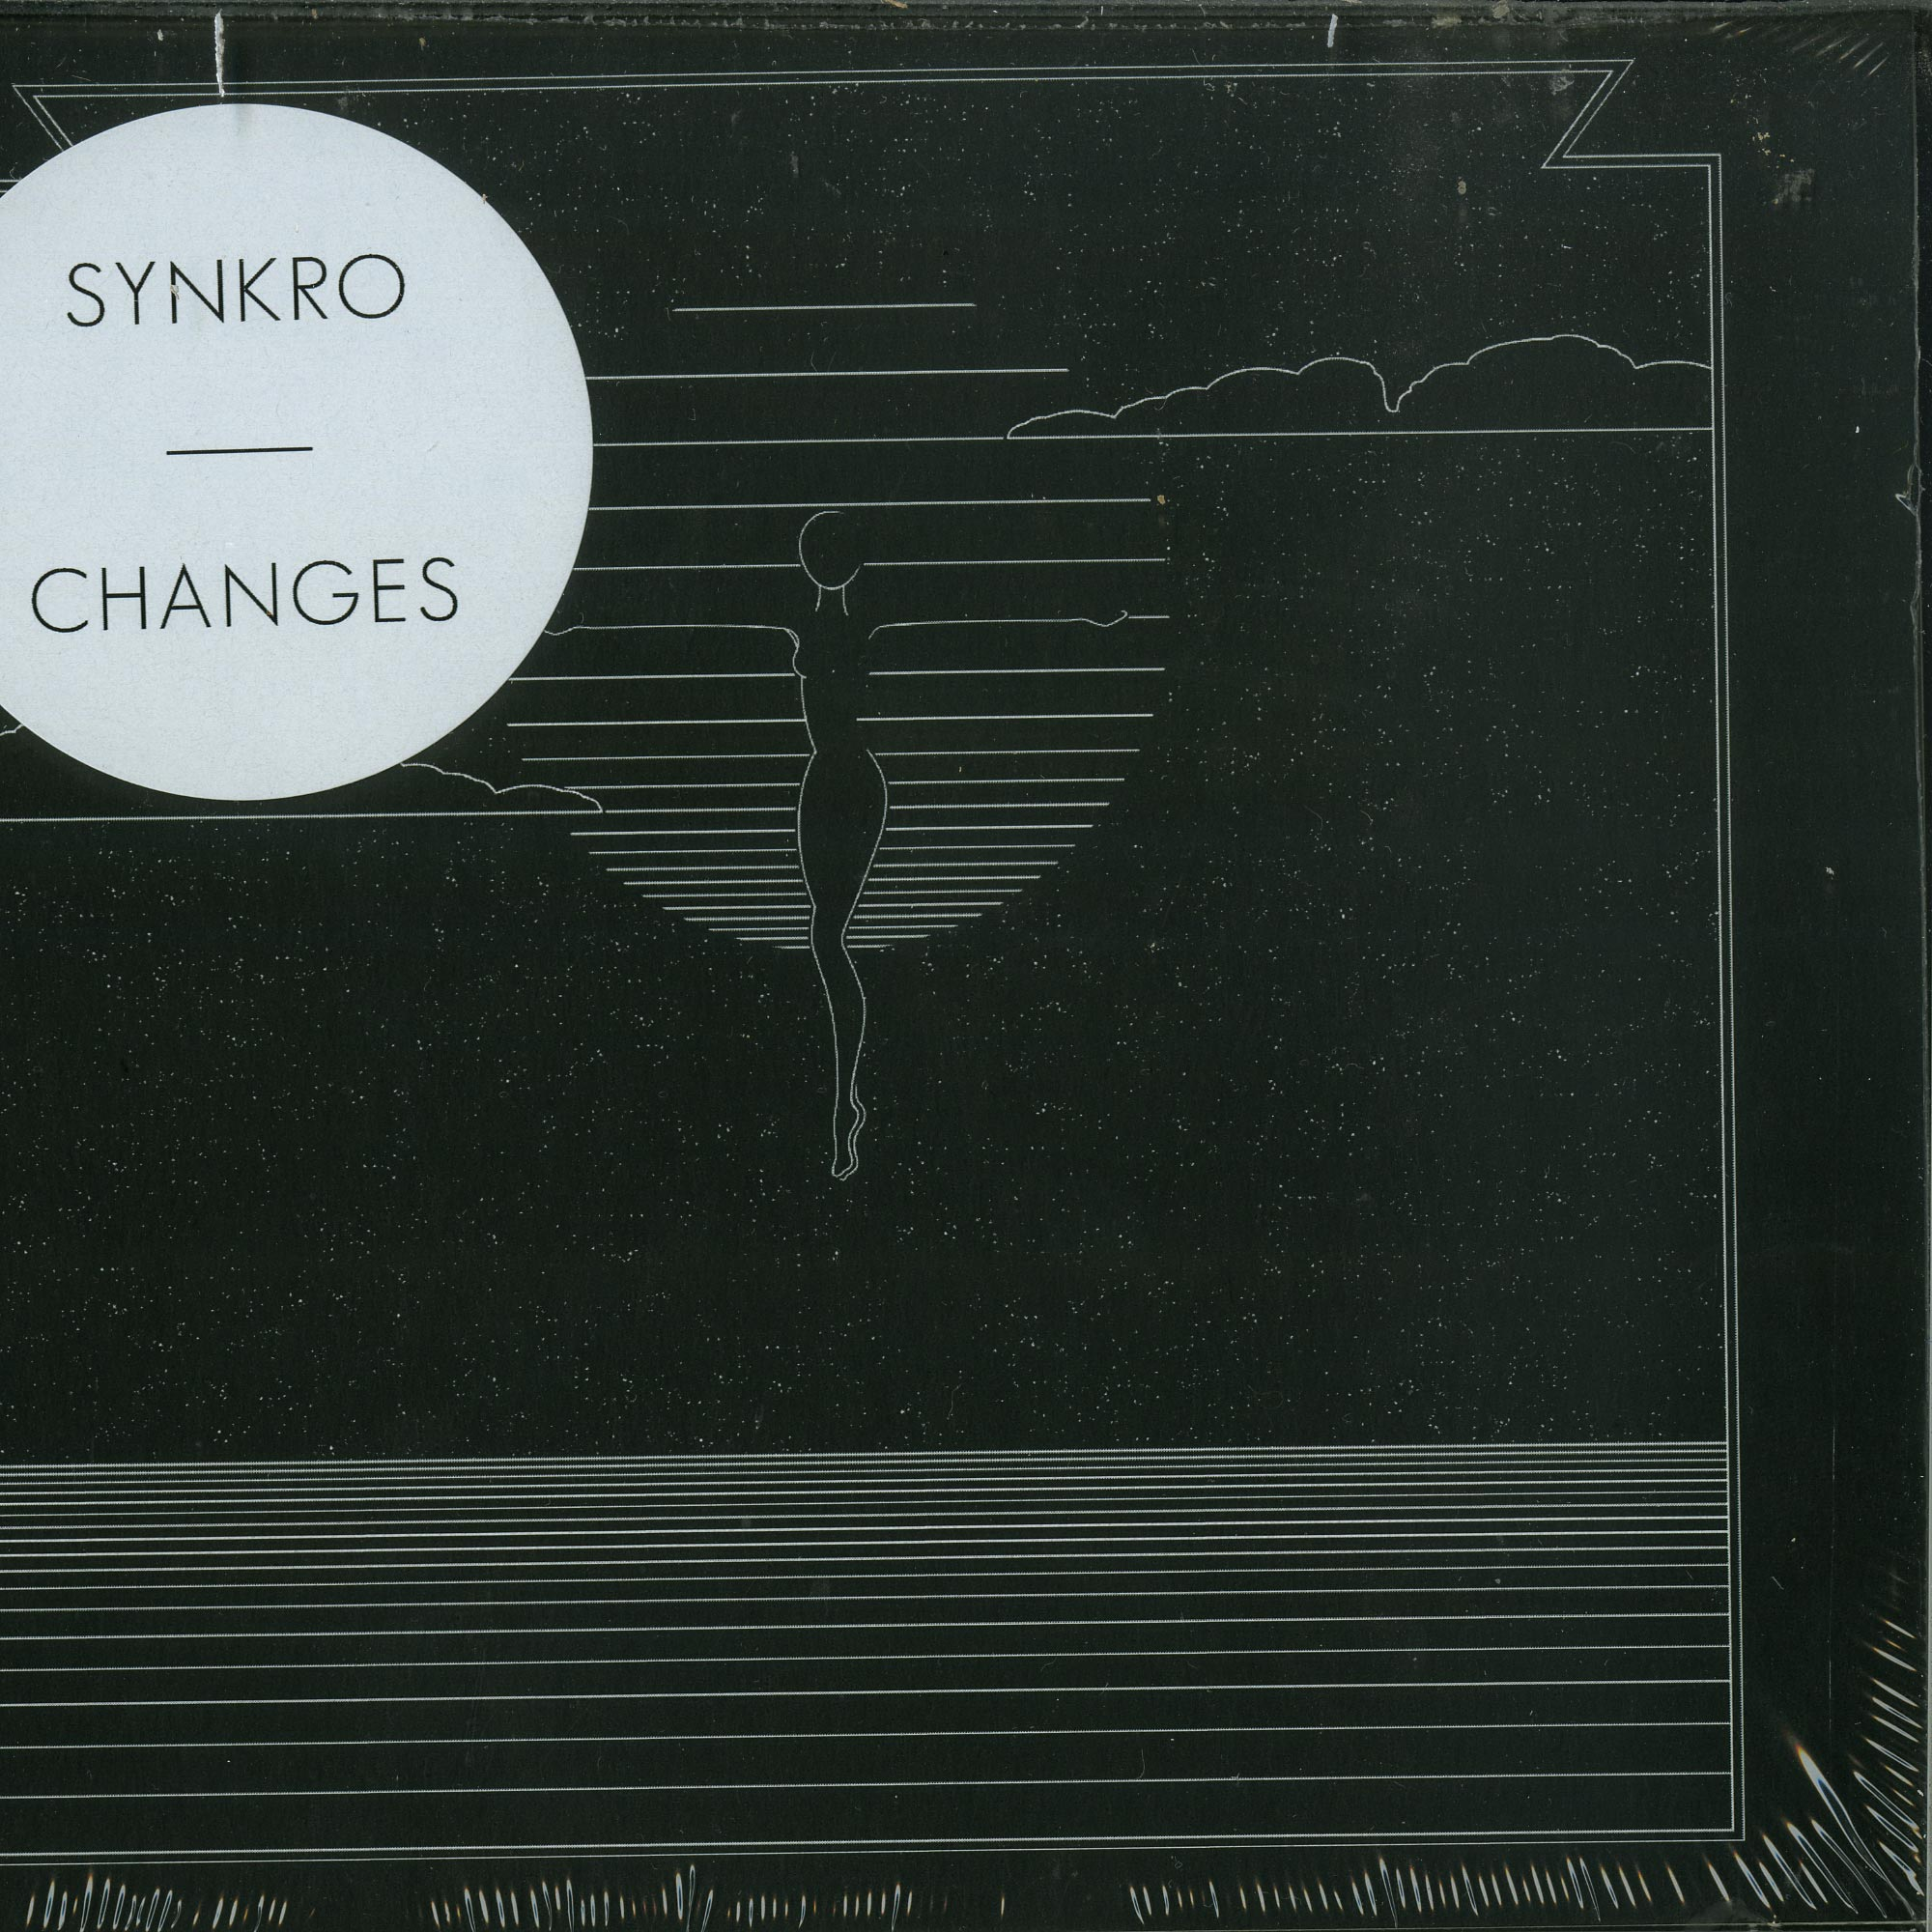 Synkro - CHANGES